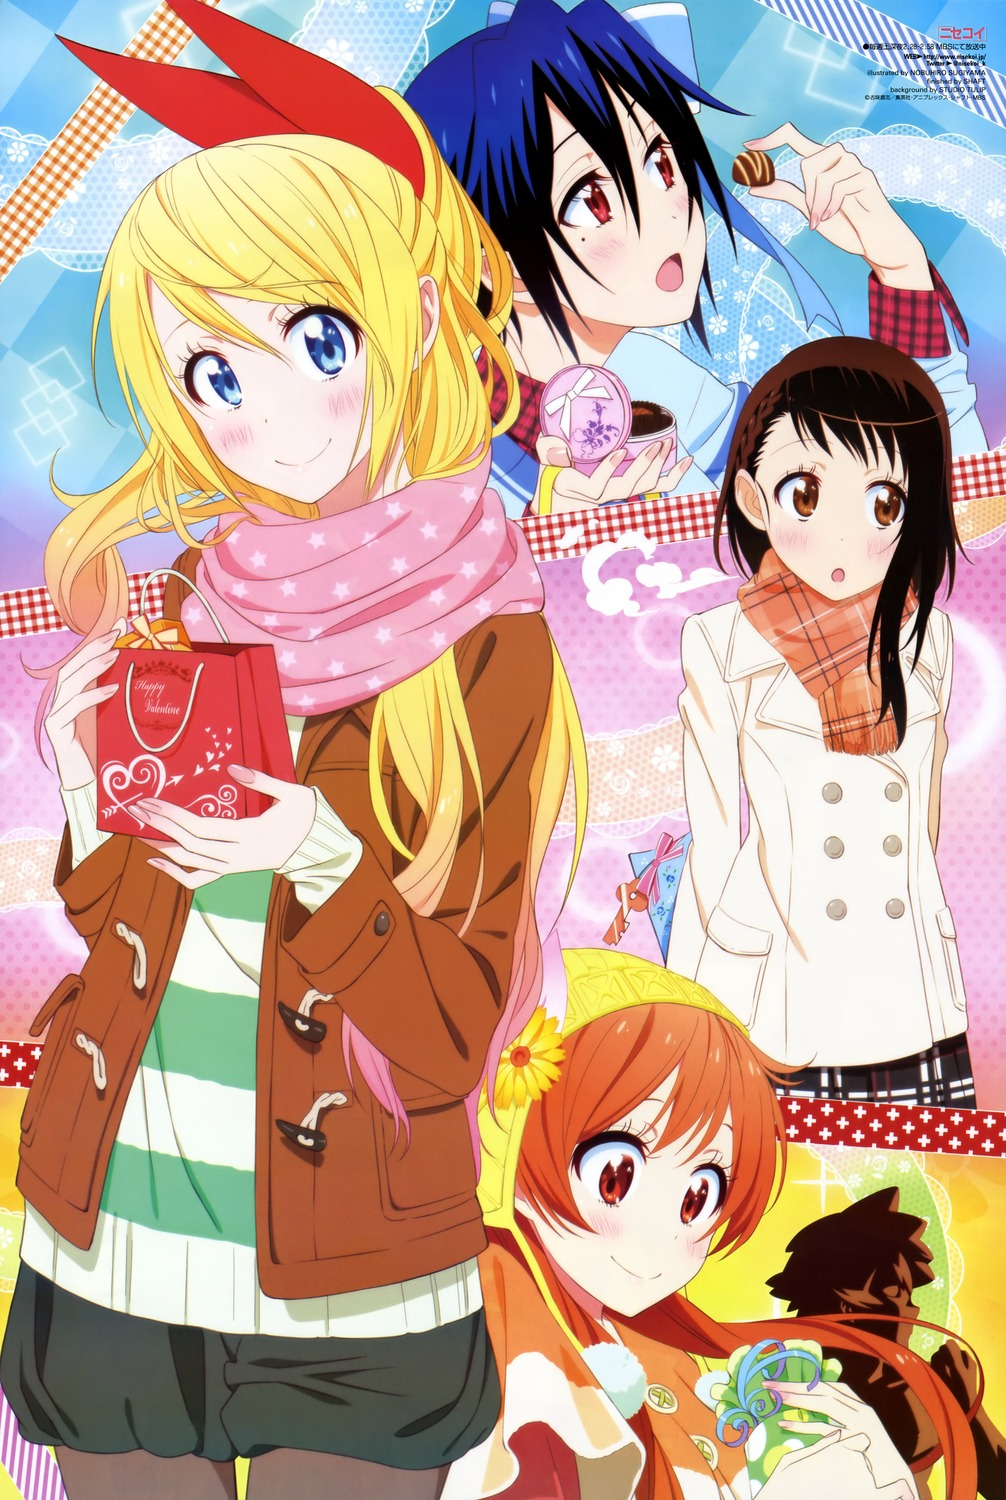 偽戀 Nisekoi - 全7卷+OAD 第01話 (BD 720p AVC AAC).mp4 [encoded by SEED] 內詳~